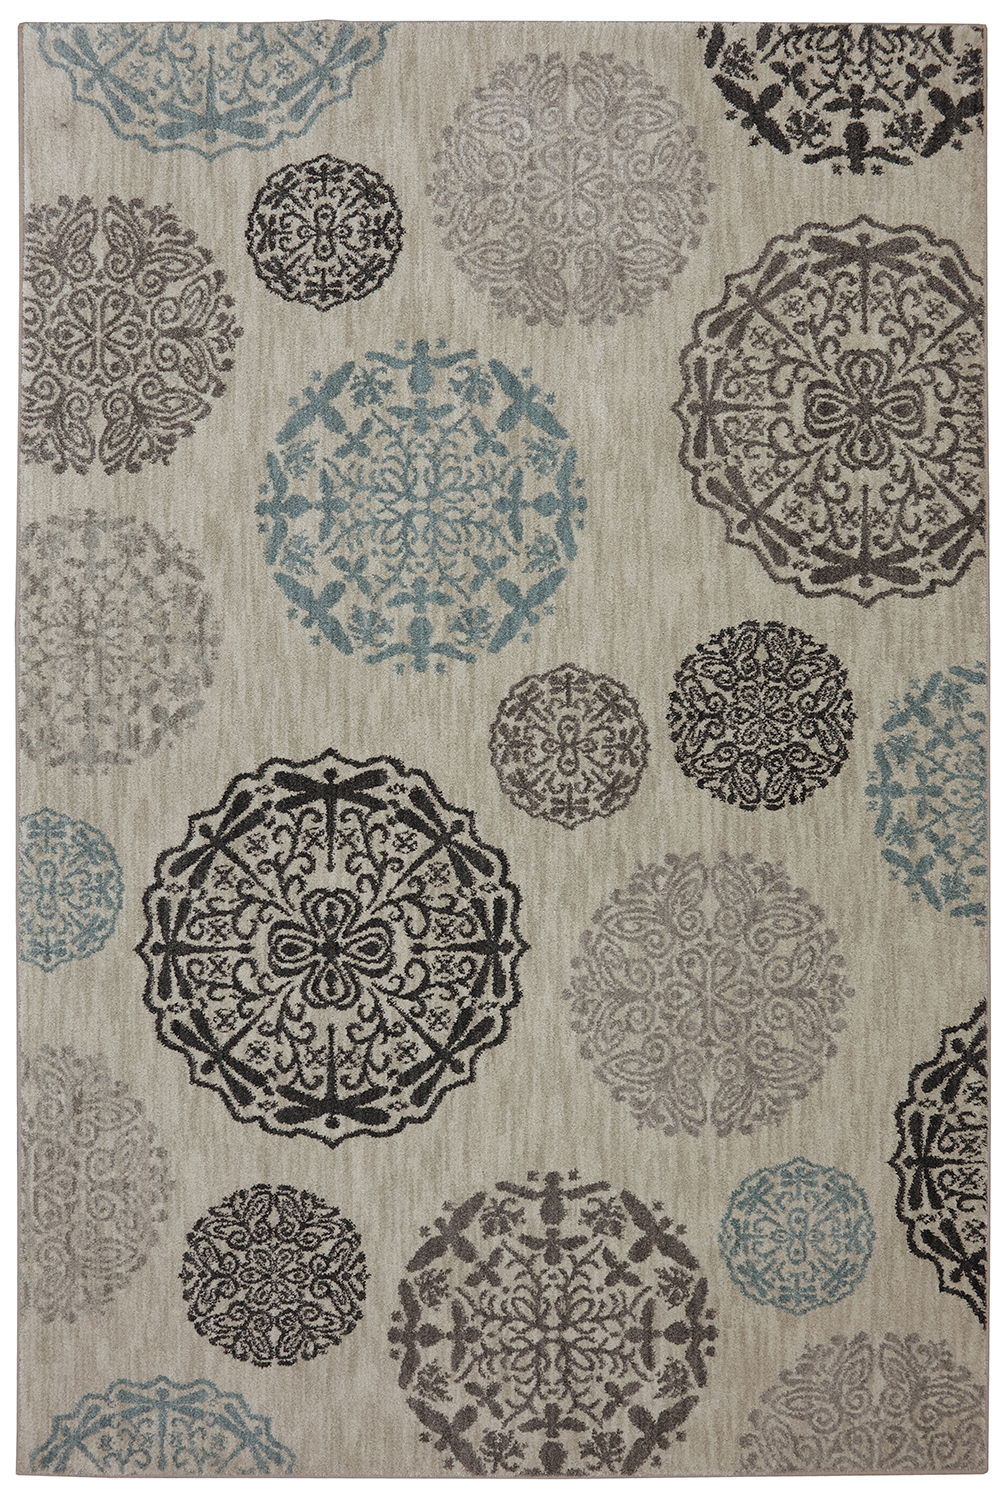 90449 60106 Dragonfly Medallion Abyss Blue